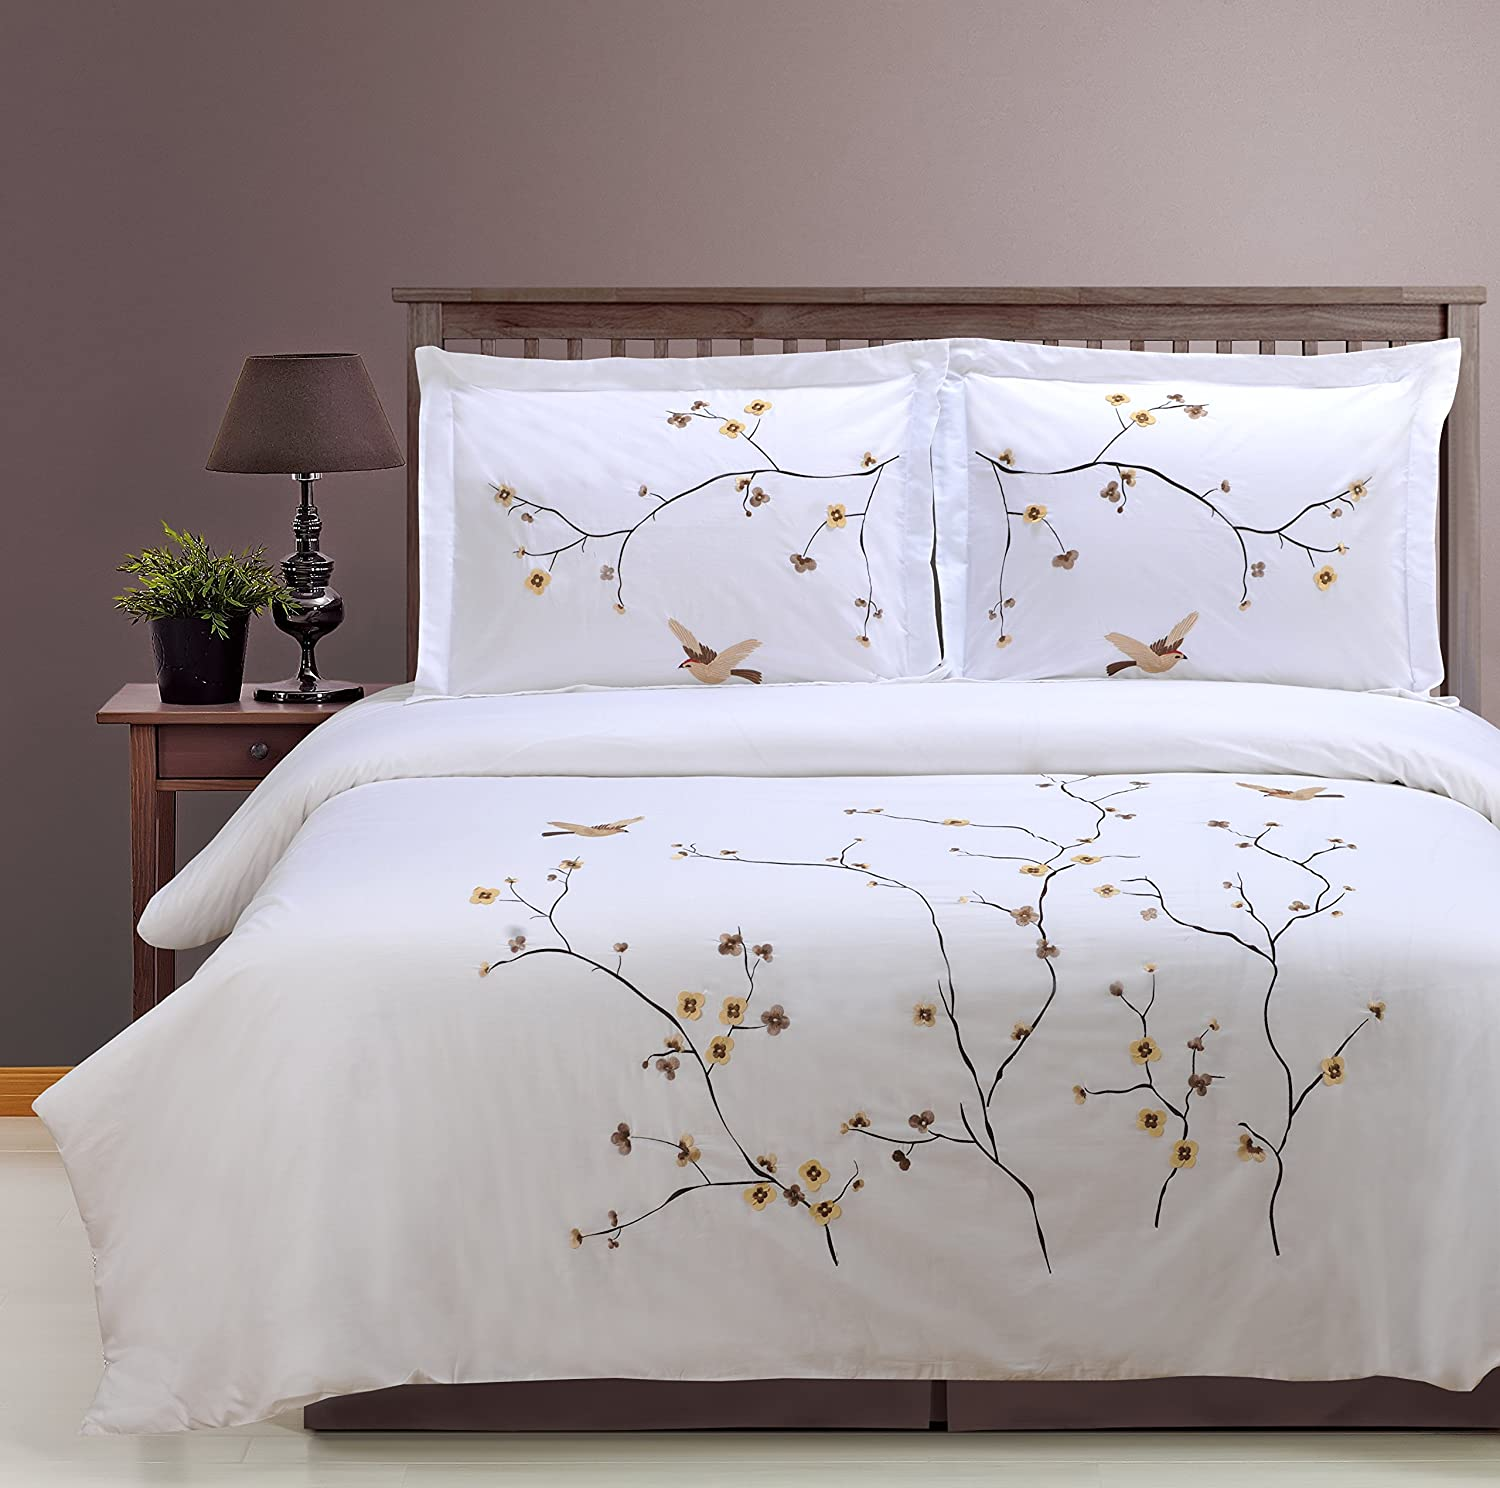 Blossom Full Queen Superior 100% Cotton Percale Embroidered 3-Piece Duvet Cover Set, King California King, bluee Swallow